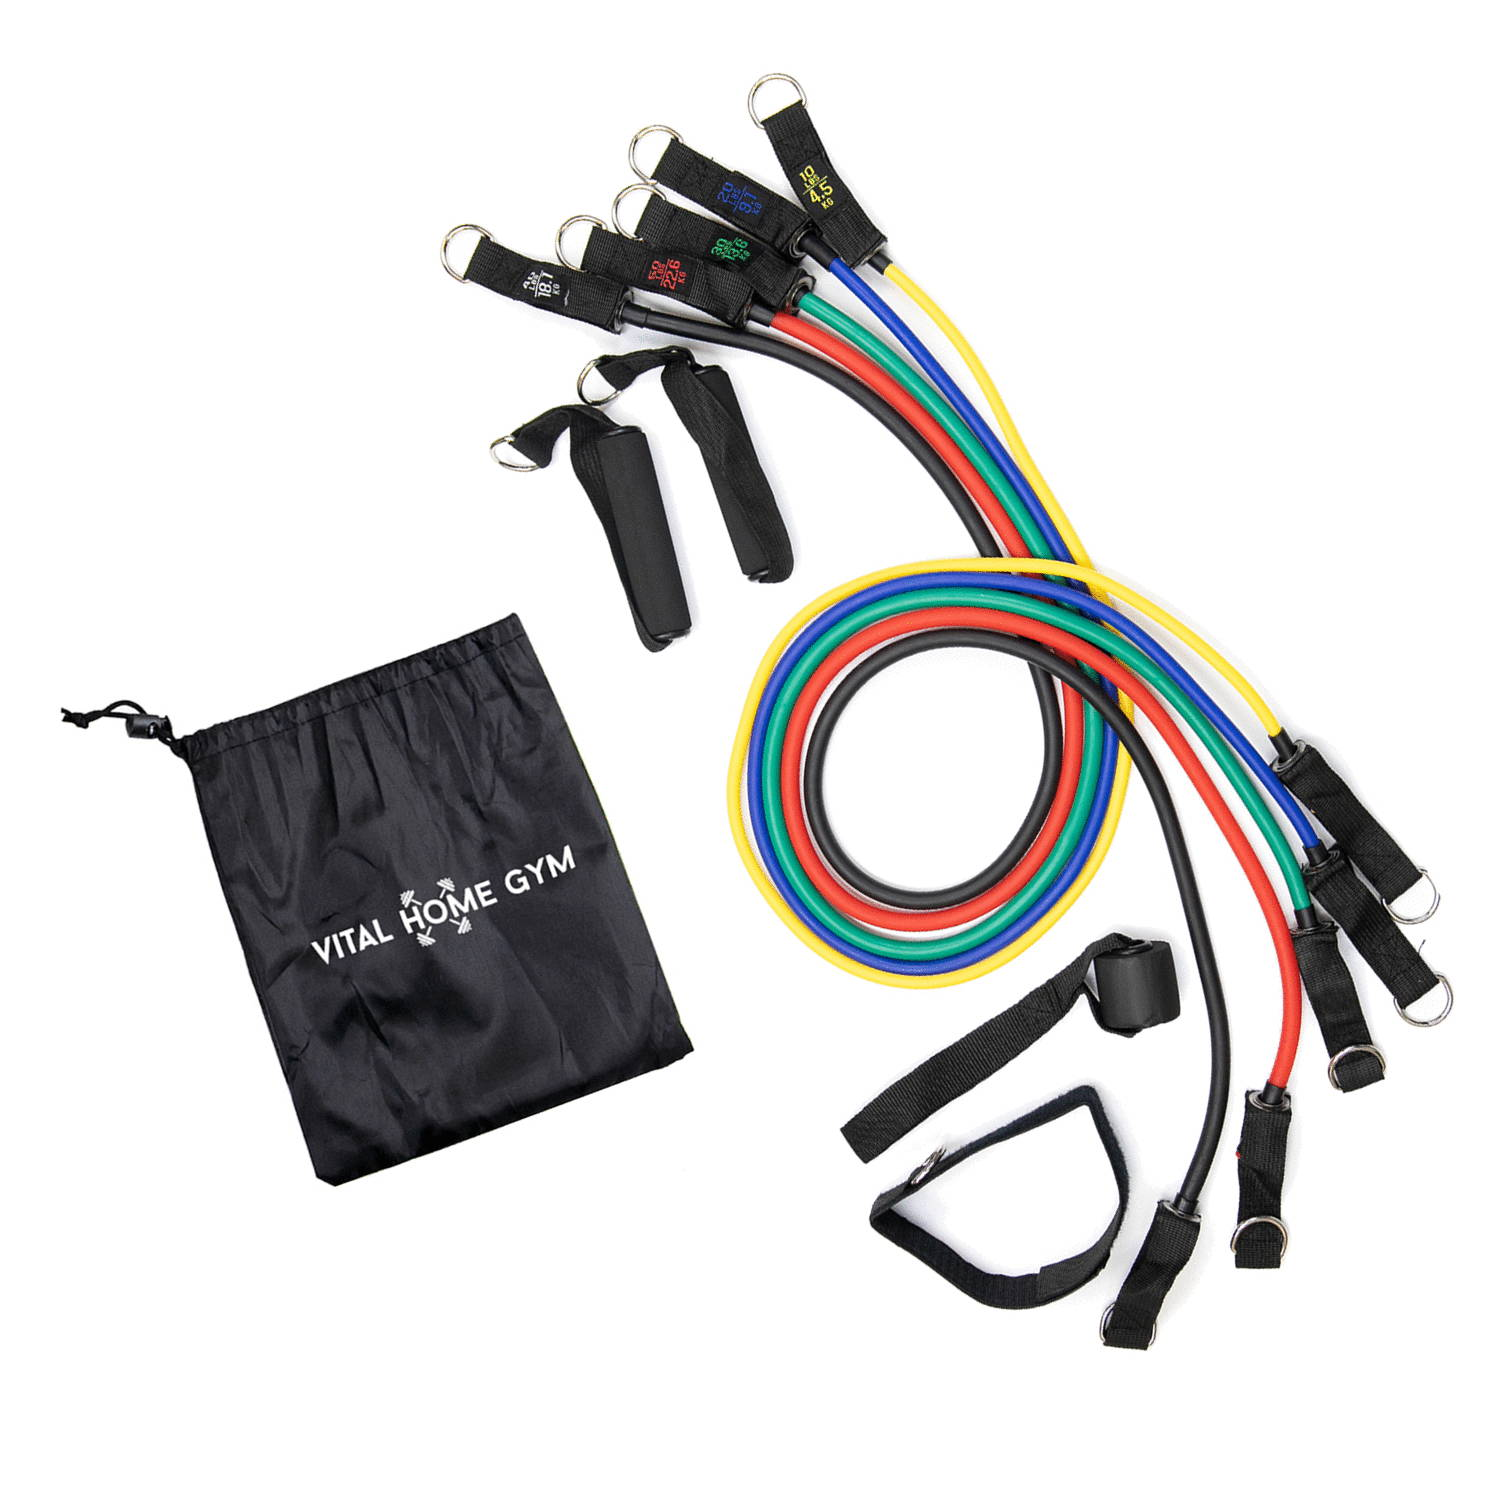 Resistance Bands, Exercise Bands, Workout Bands